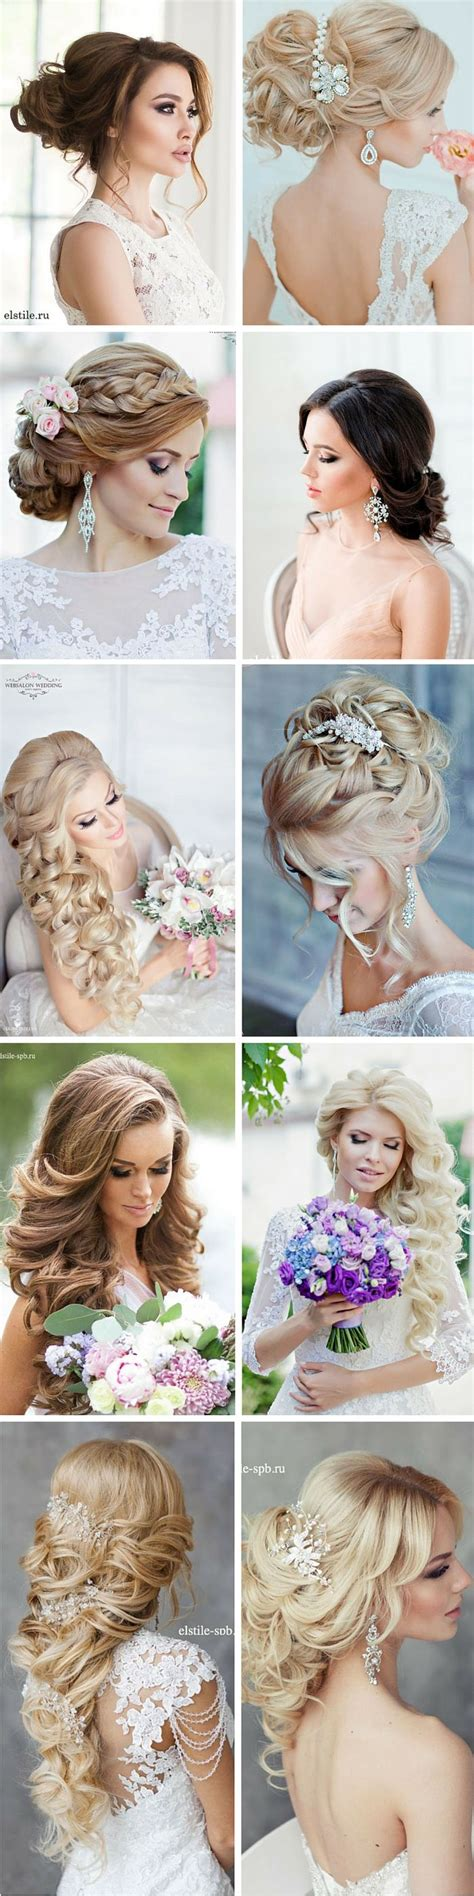 Summer Wedding Hairstyles For Hair by Wedding Hairstyle For Hair 27 Stunning Summer